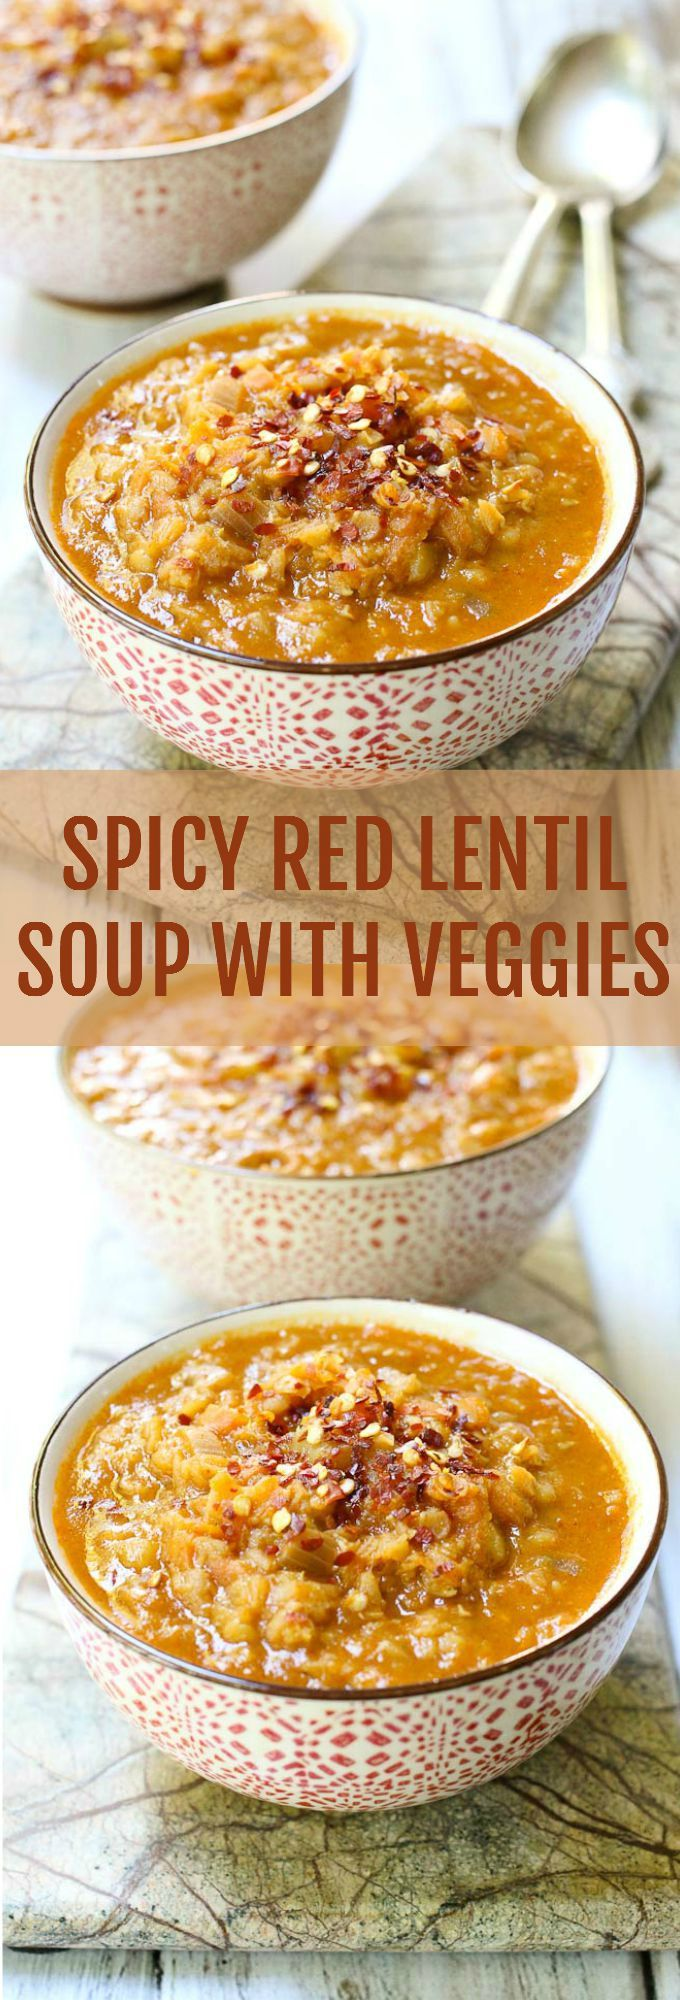 This Spicy Red Lentil Soup is filling, comforting, healthy, low GI, dairy-free, vegan, gluten-free and simply perfect. It's also spicy enough to warm you up on a cold rainy day.